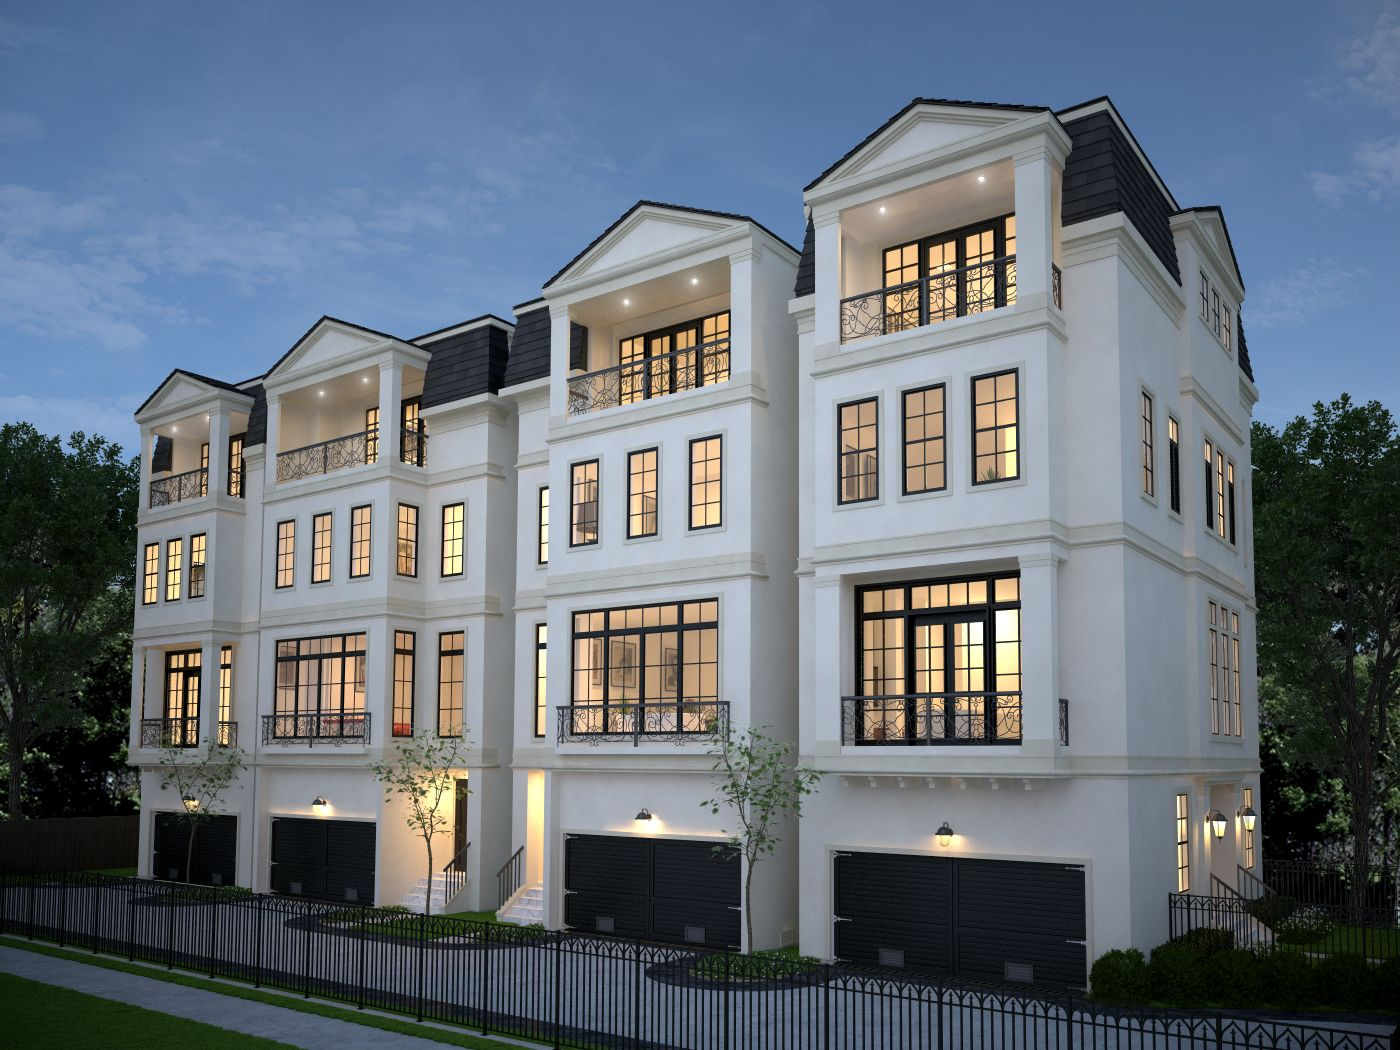 4 Story House Of Four 4 Story Townhomes In Houston By Preston Wood Assoc